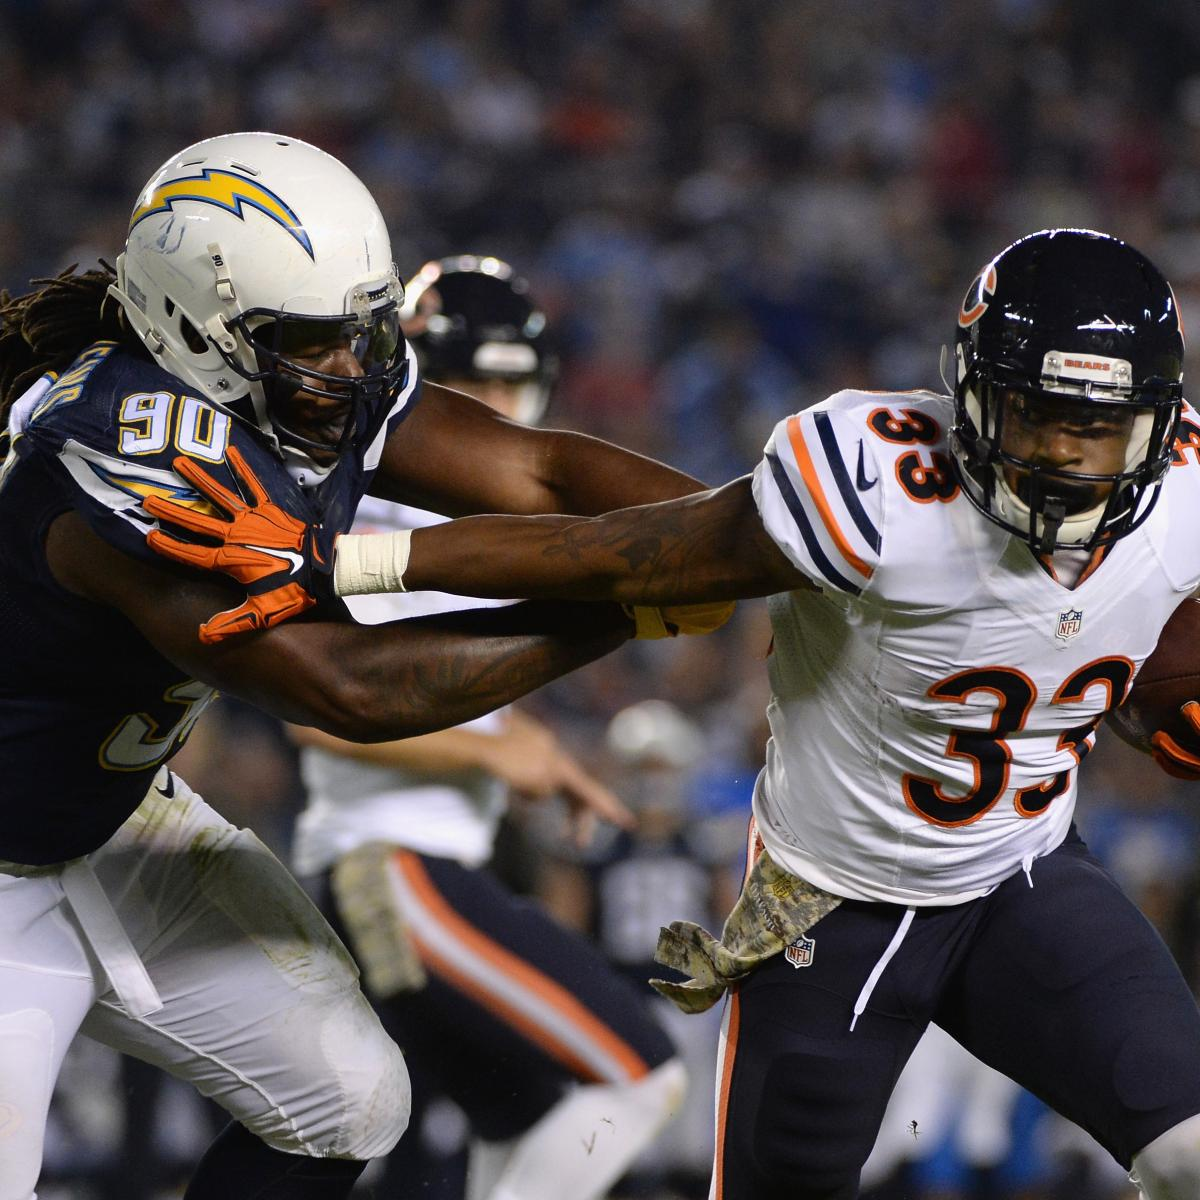 San Diego Chargers Current Score: Chicago Bears Vs. San Diego Chargers: Live Score